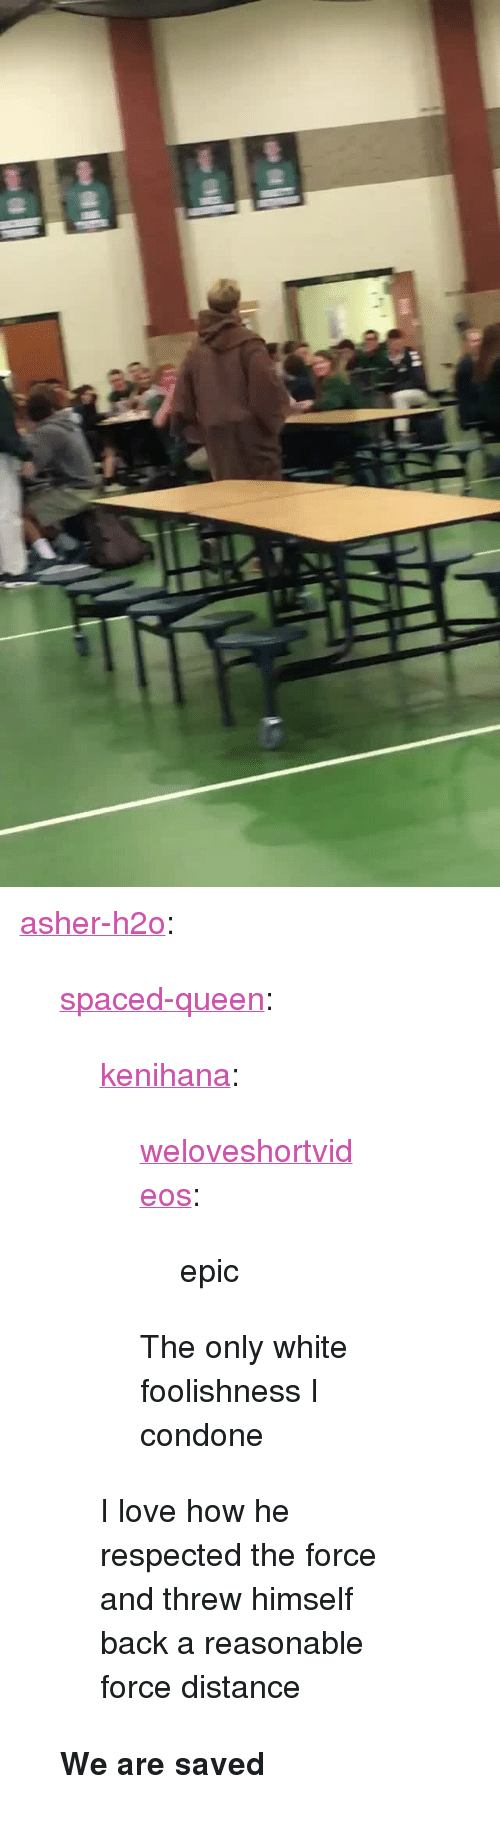 """Condone: <p><a href=""""https://asher-h2o.tumblr.com/post/157070085287/spaced-queen-kenihana-weloveshortvideos"""" class=""""tumblr_blog"""" target=""""_blank"""">asher-h2o</a>:</p><blockquote> <p><a href=""""http://spaced-queen.tumblr.com/post/156420434699/kenihana-weloveshortvideos-epic-the-only"""" class=""""tumblr_blog"""" target=""""_blank"""">spaced-queen</a>:</p> <blockquote> <p><a href=""""http://kenihana.tumblr.com/post/155832946026/weloveshortvideos-epic-the-only-white"""" class=""""tumblr_blog"""" target=""""_blank"""">kenihana</a>:</p> <blockquote> <p><a href=""""http://weloveshortvideos.com/post/154551638817/epic"""" class=""""tumblr_blog"""" target=""""_blank"""">weloveshortvideos</a>:</p>  <blockquote><p> epic</p></blockquote>  <p>The only white foolishness I condone</p> </blockquote>  <p>I love how he respected the force and threw himself back a reasonable force distance</p> </blockquote>  <b>We are saved</b> </blockquote>"""